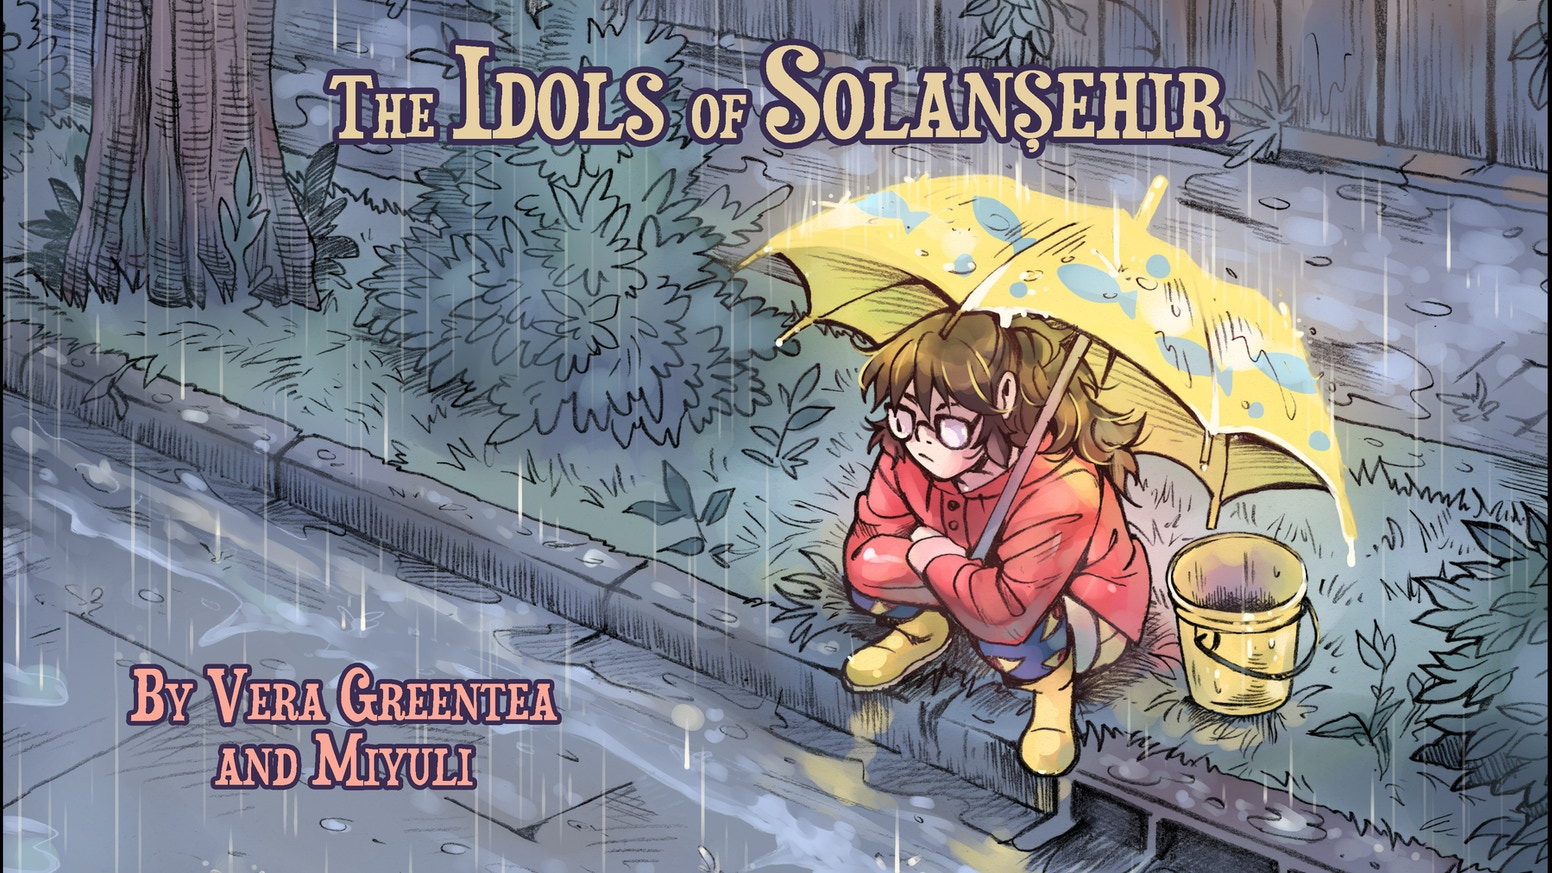 Support The Idols of Solanşehir, a bewitching story about sisters, magic and myths. Written by Vera Greentea and illustrated by Miyuli.